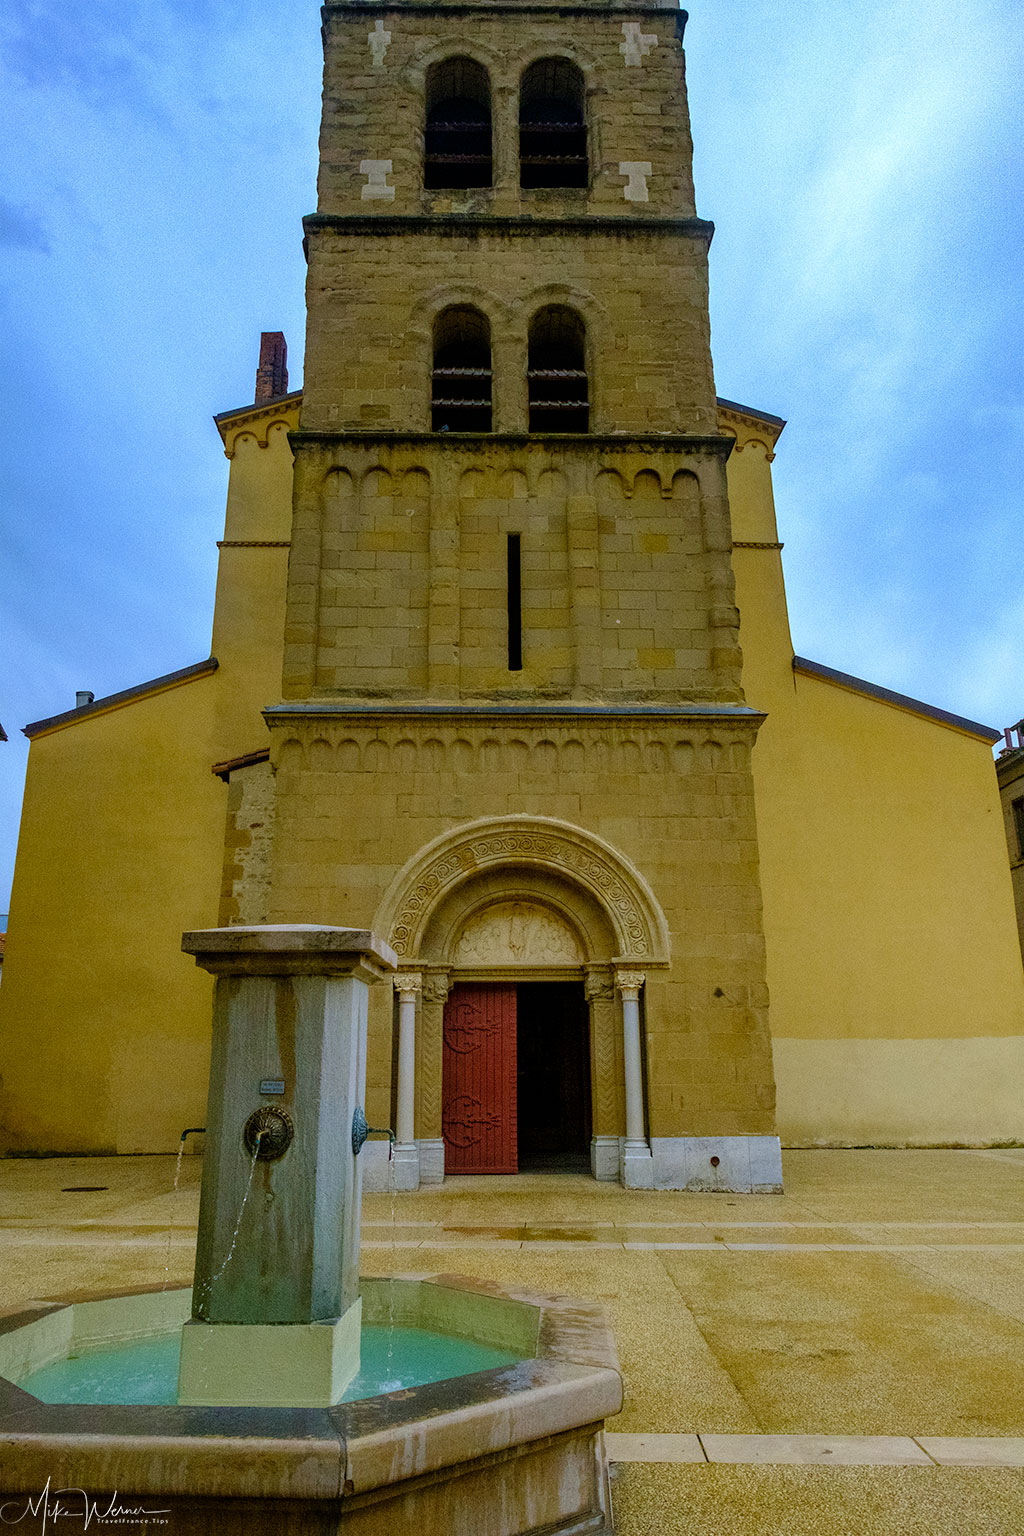 The Saint-Jean-Baptiste de Valence church